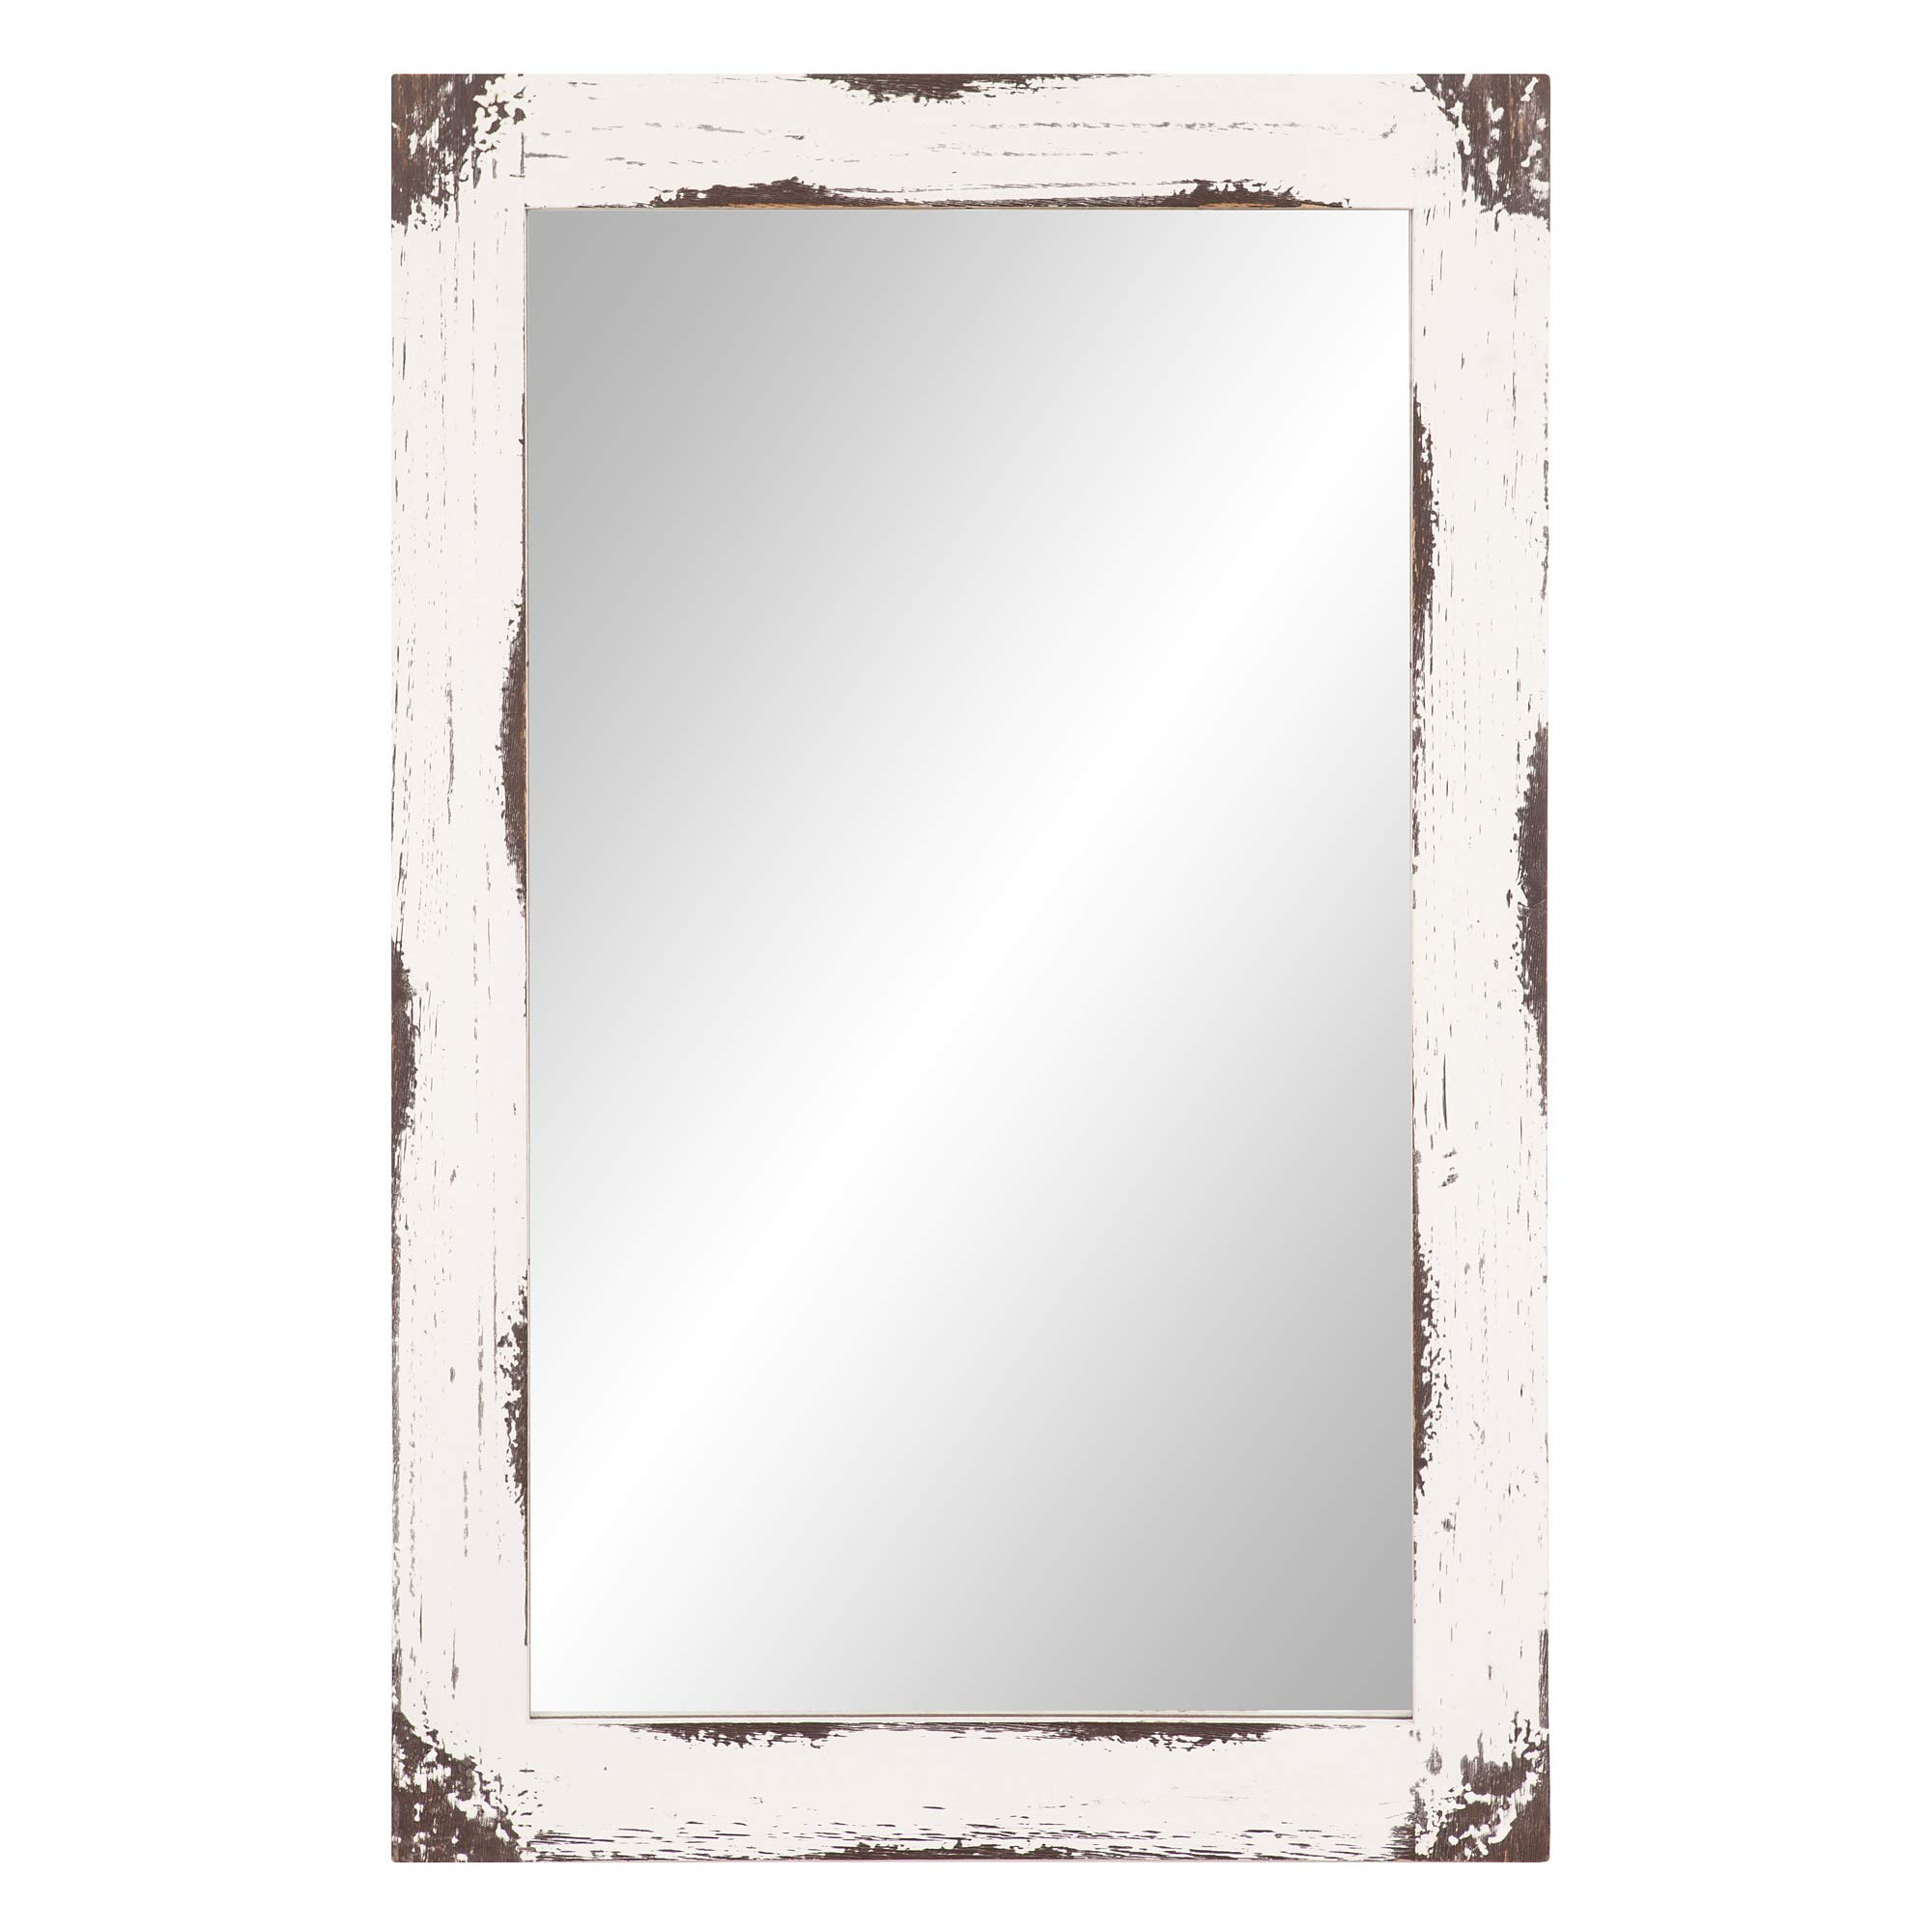 24x36 Distressed White Reclaimed Wood Wall Mirror by Patton Wall Decor